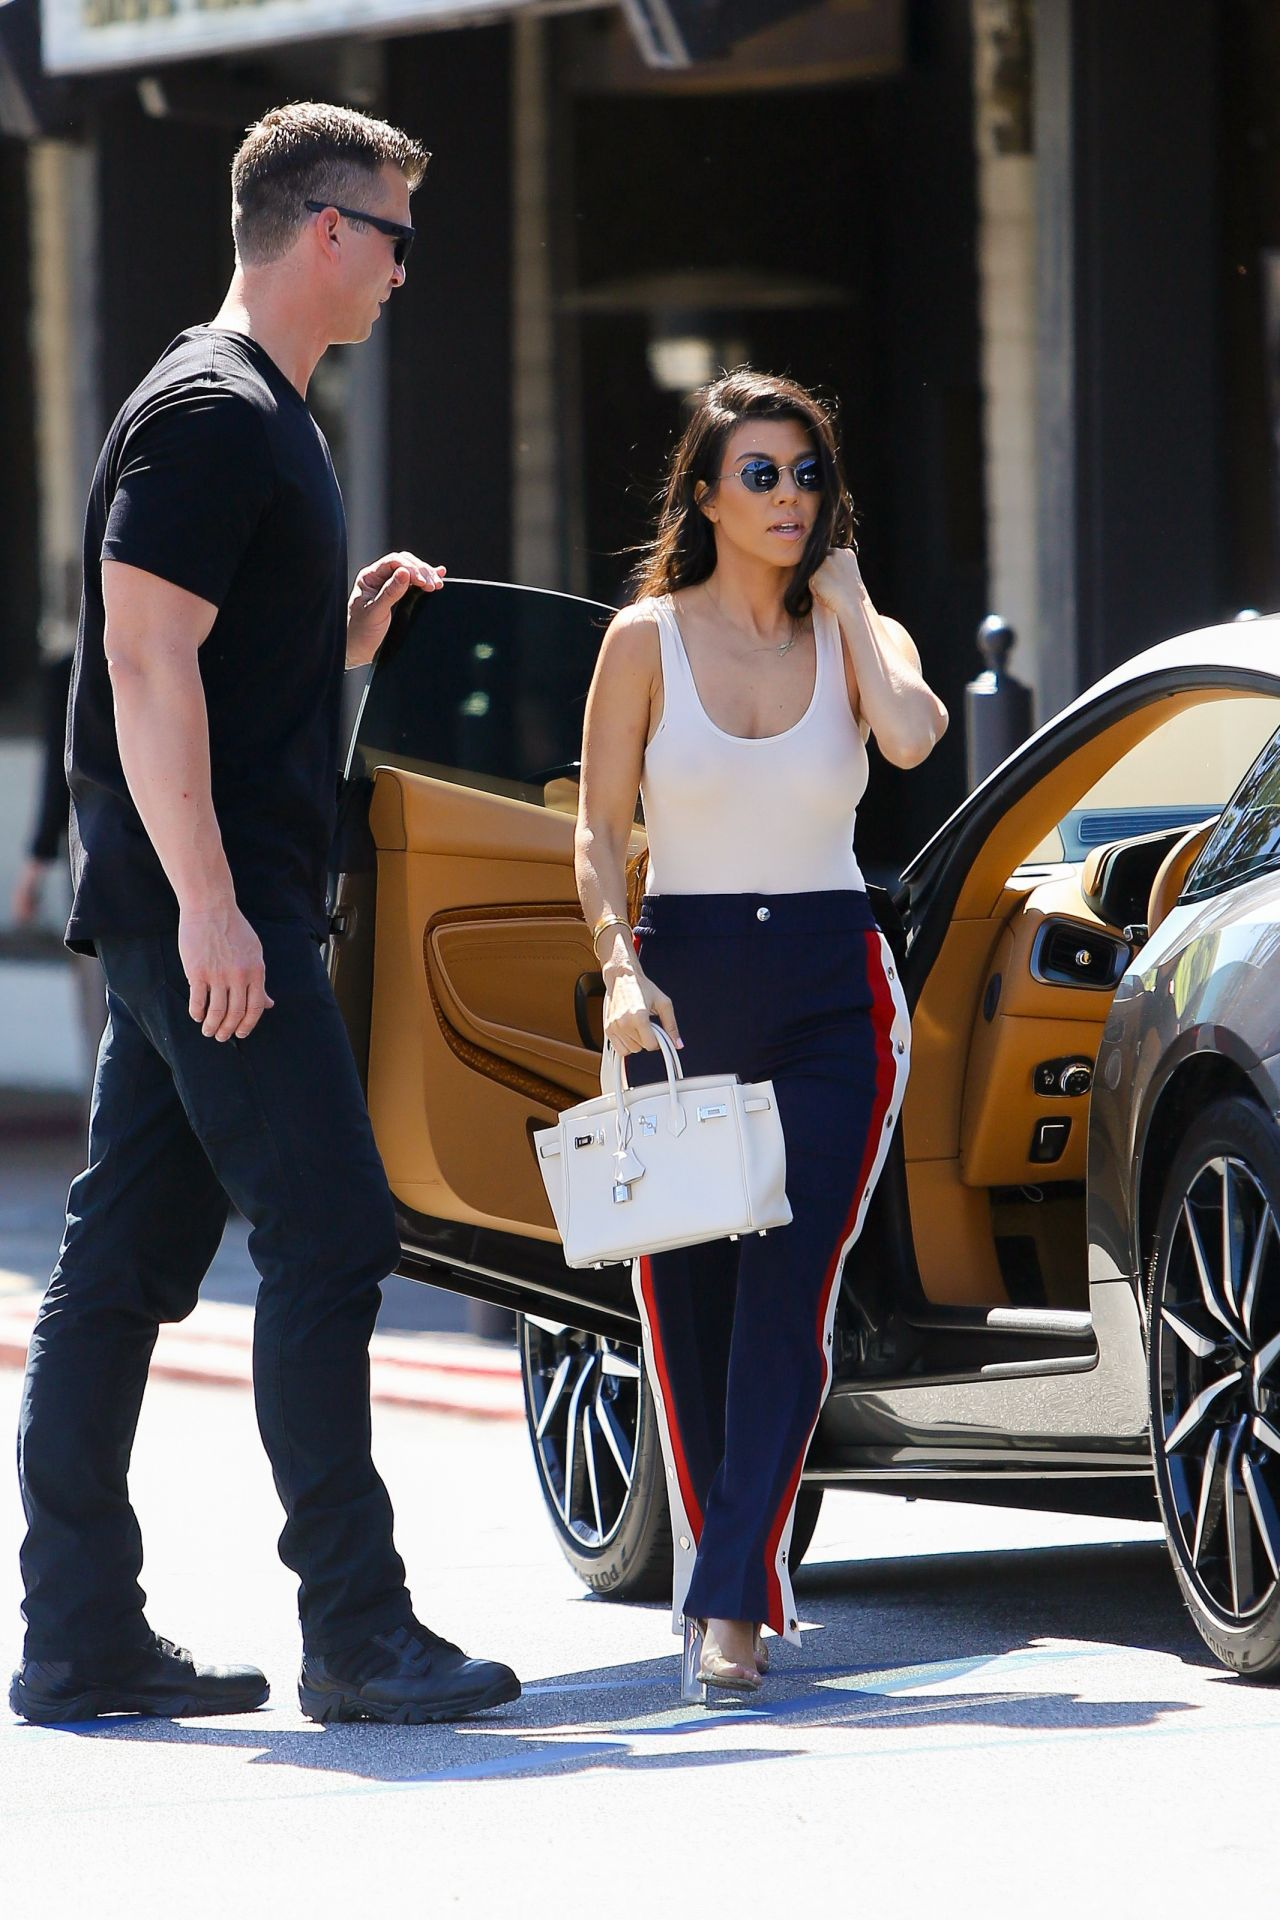 Kourtney Kardashian And Her Gunmetal Grey Aston Martin Out In La 3